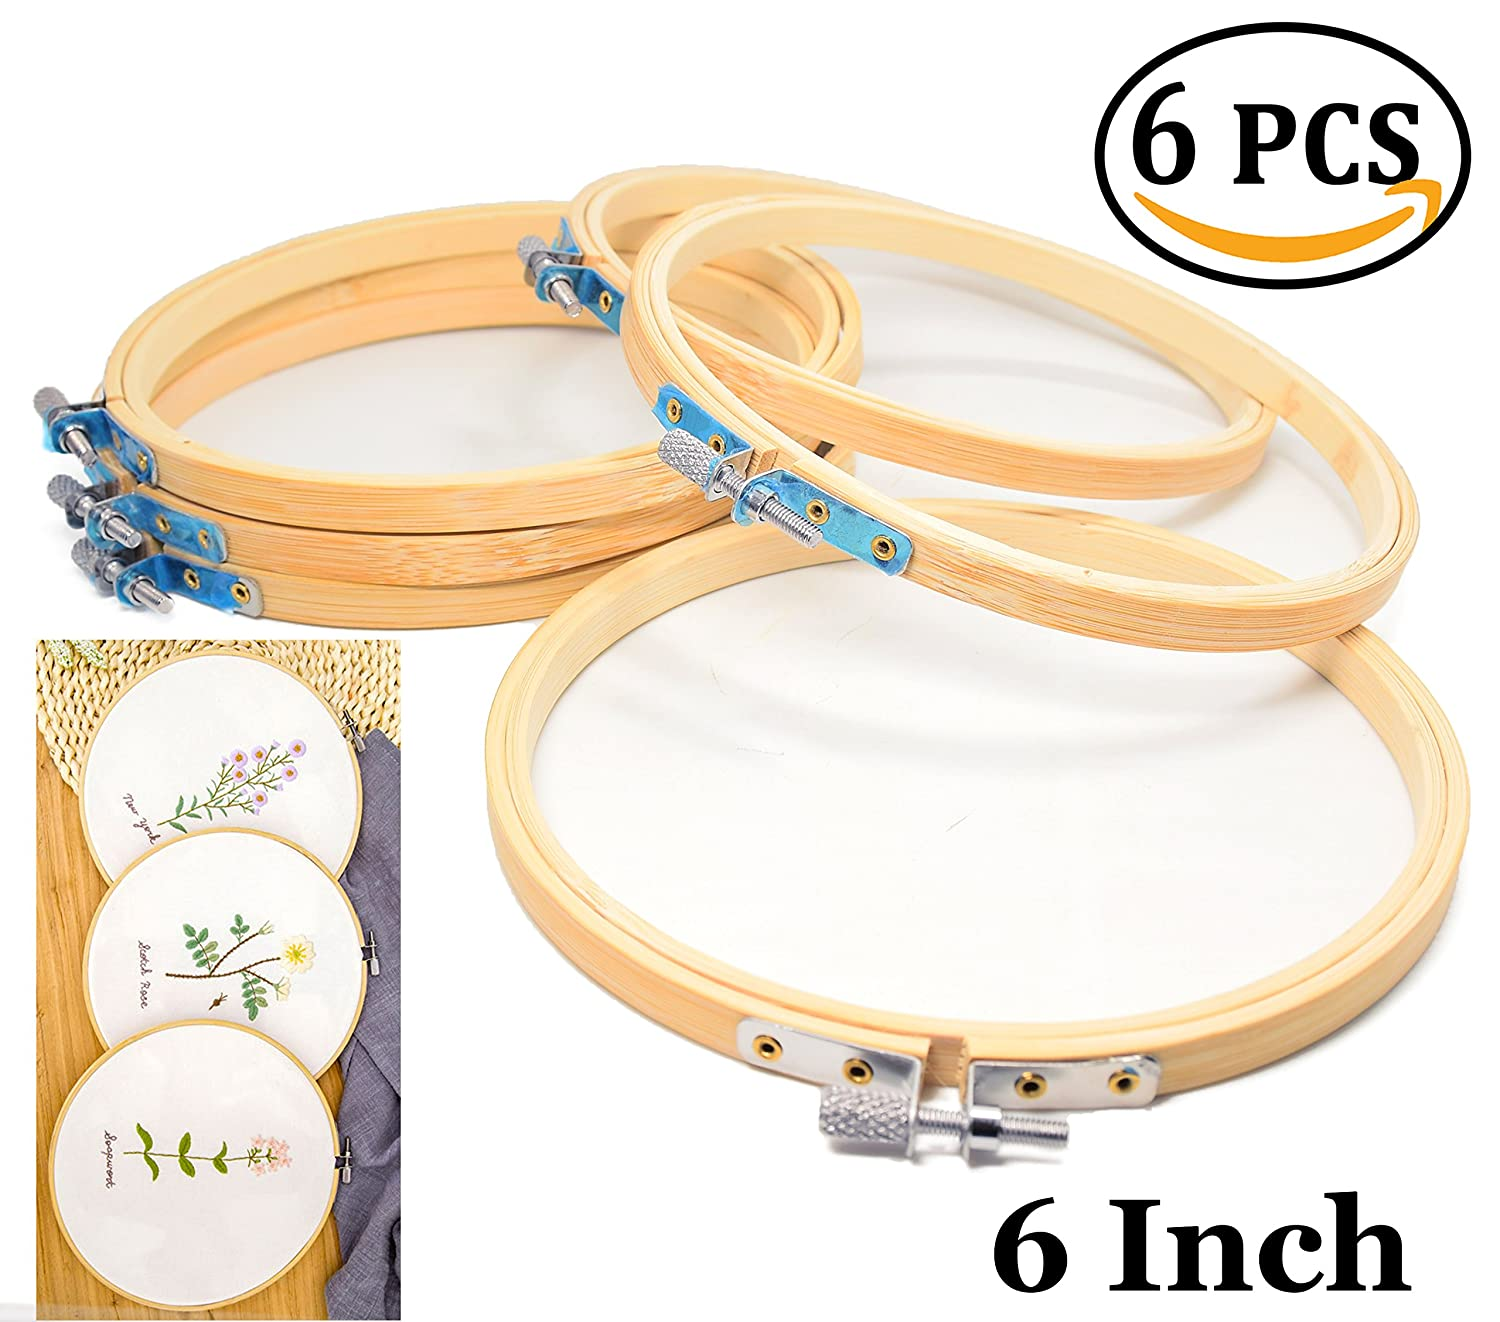 Amazon.com: 6 inch Round Wooden Embroidery Hoops Bulk Wholesale ...